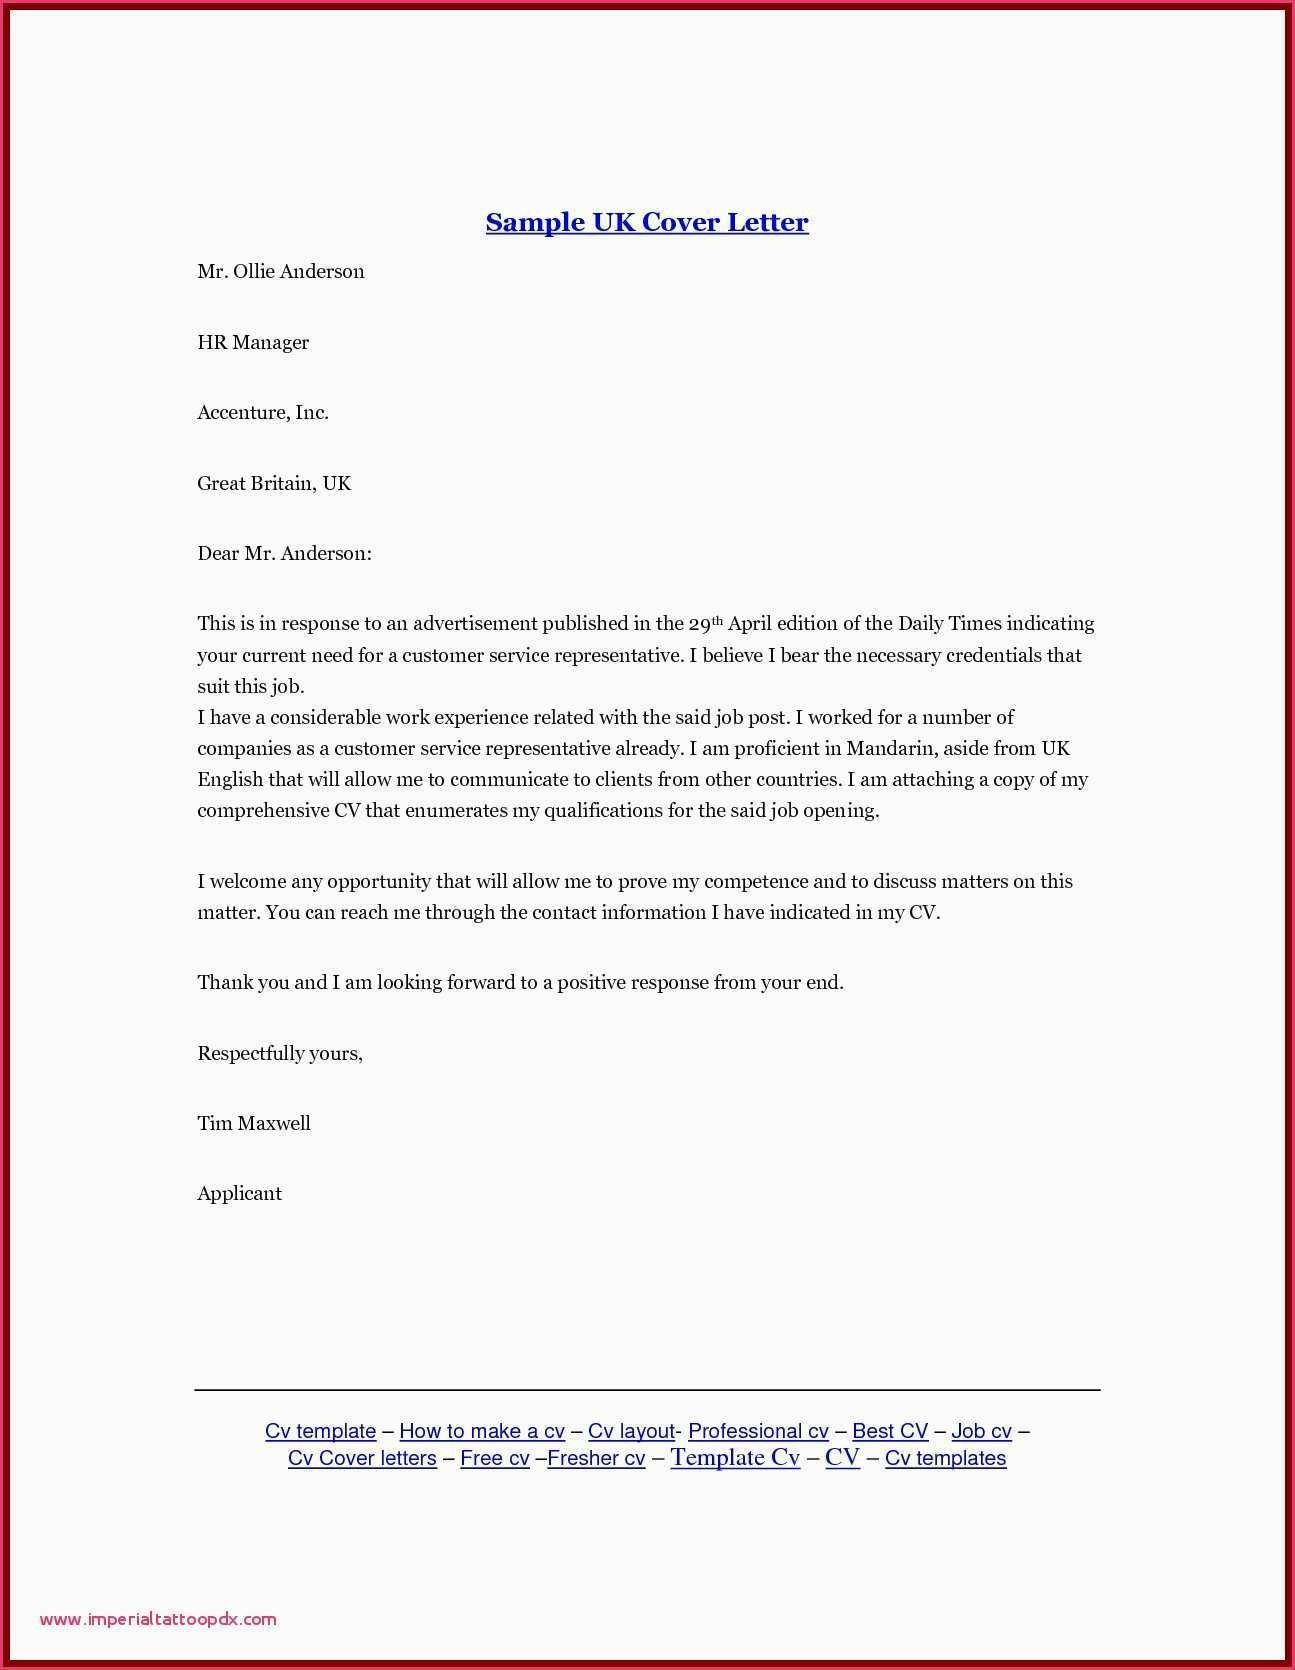 download inspirational cover letter apply job at https receptionist resume skills how to make your first with no experience it project manager summary